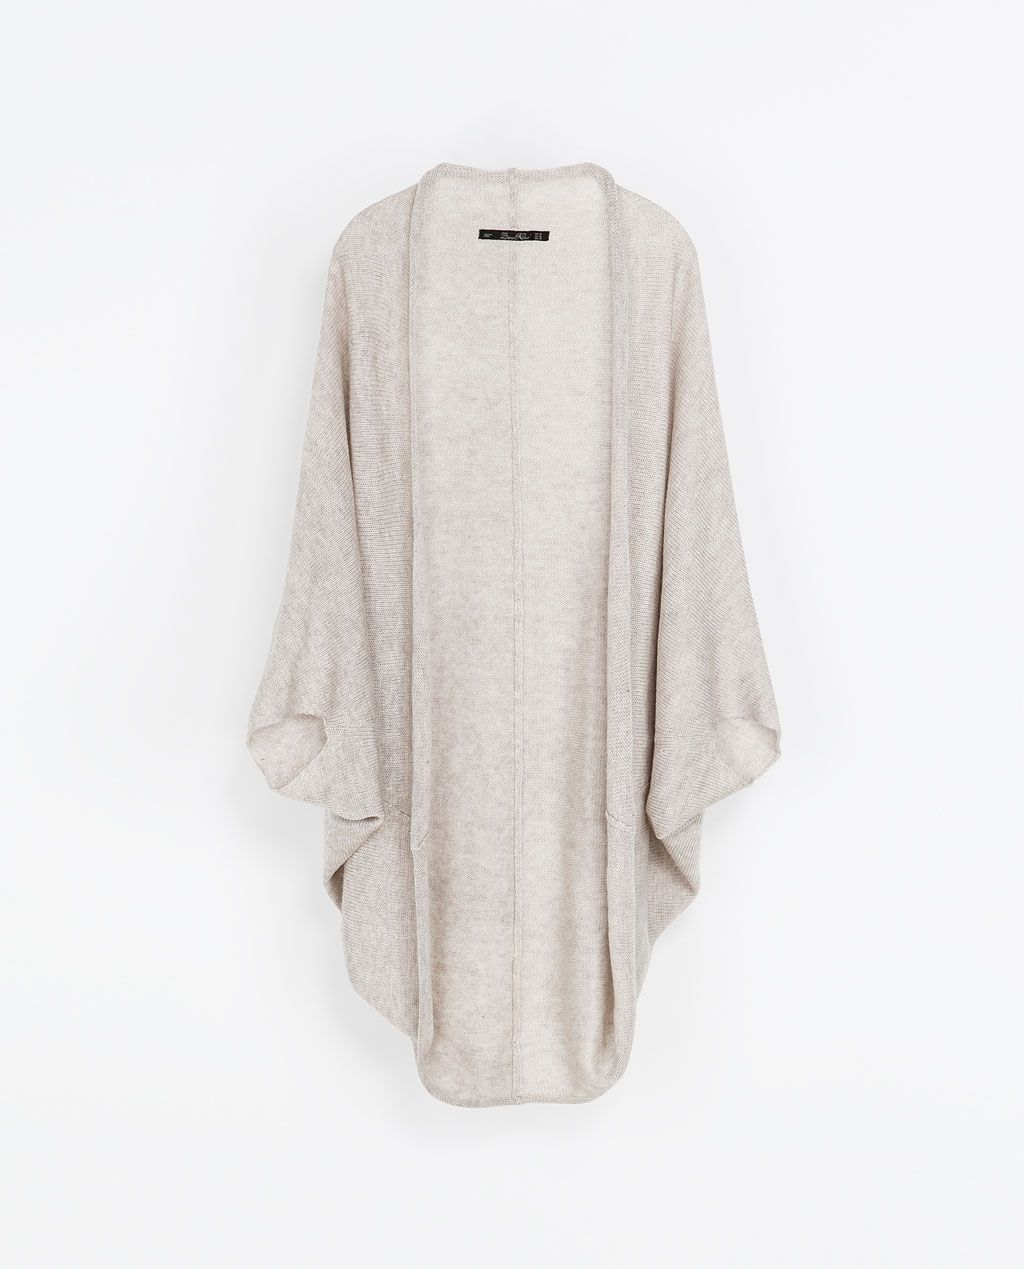 LONG WRAPAROUND CARDIGAN from Zara $16.99 | Fabulous finds under ...